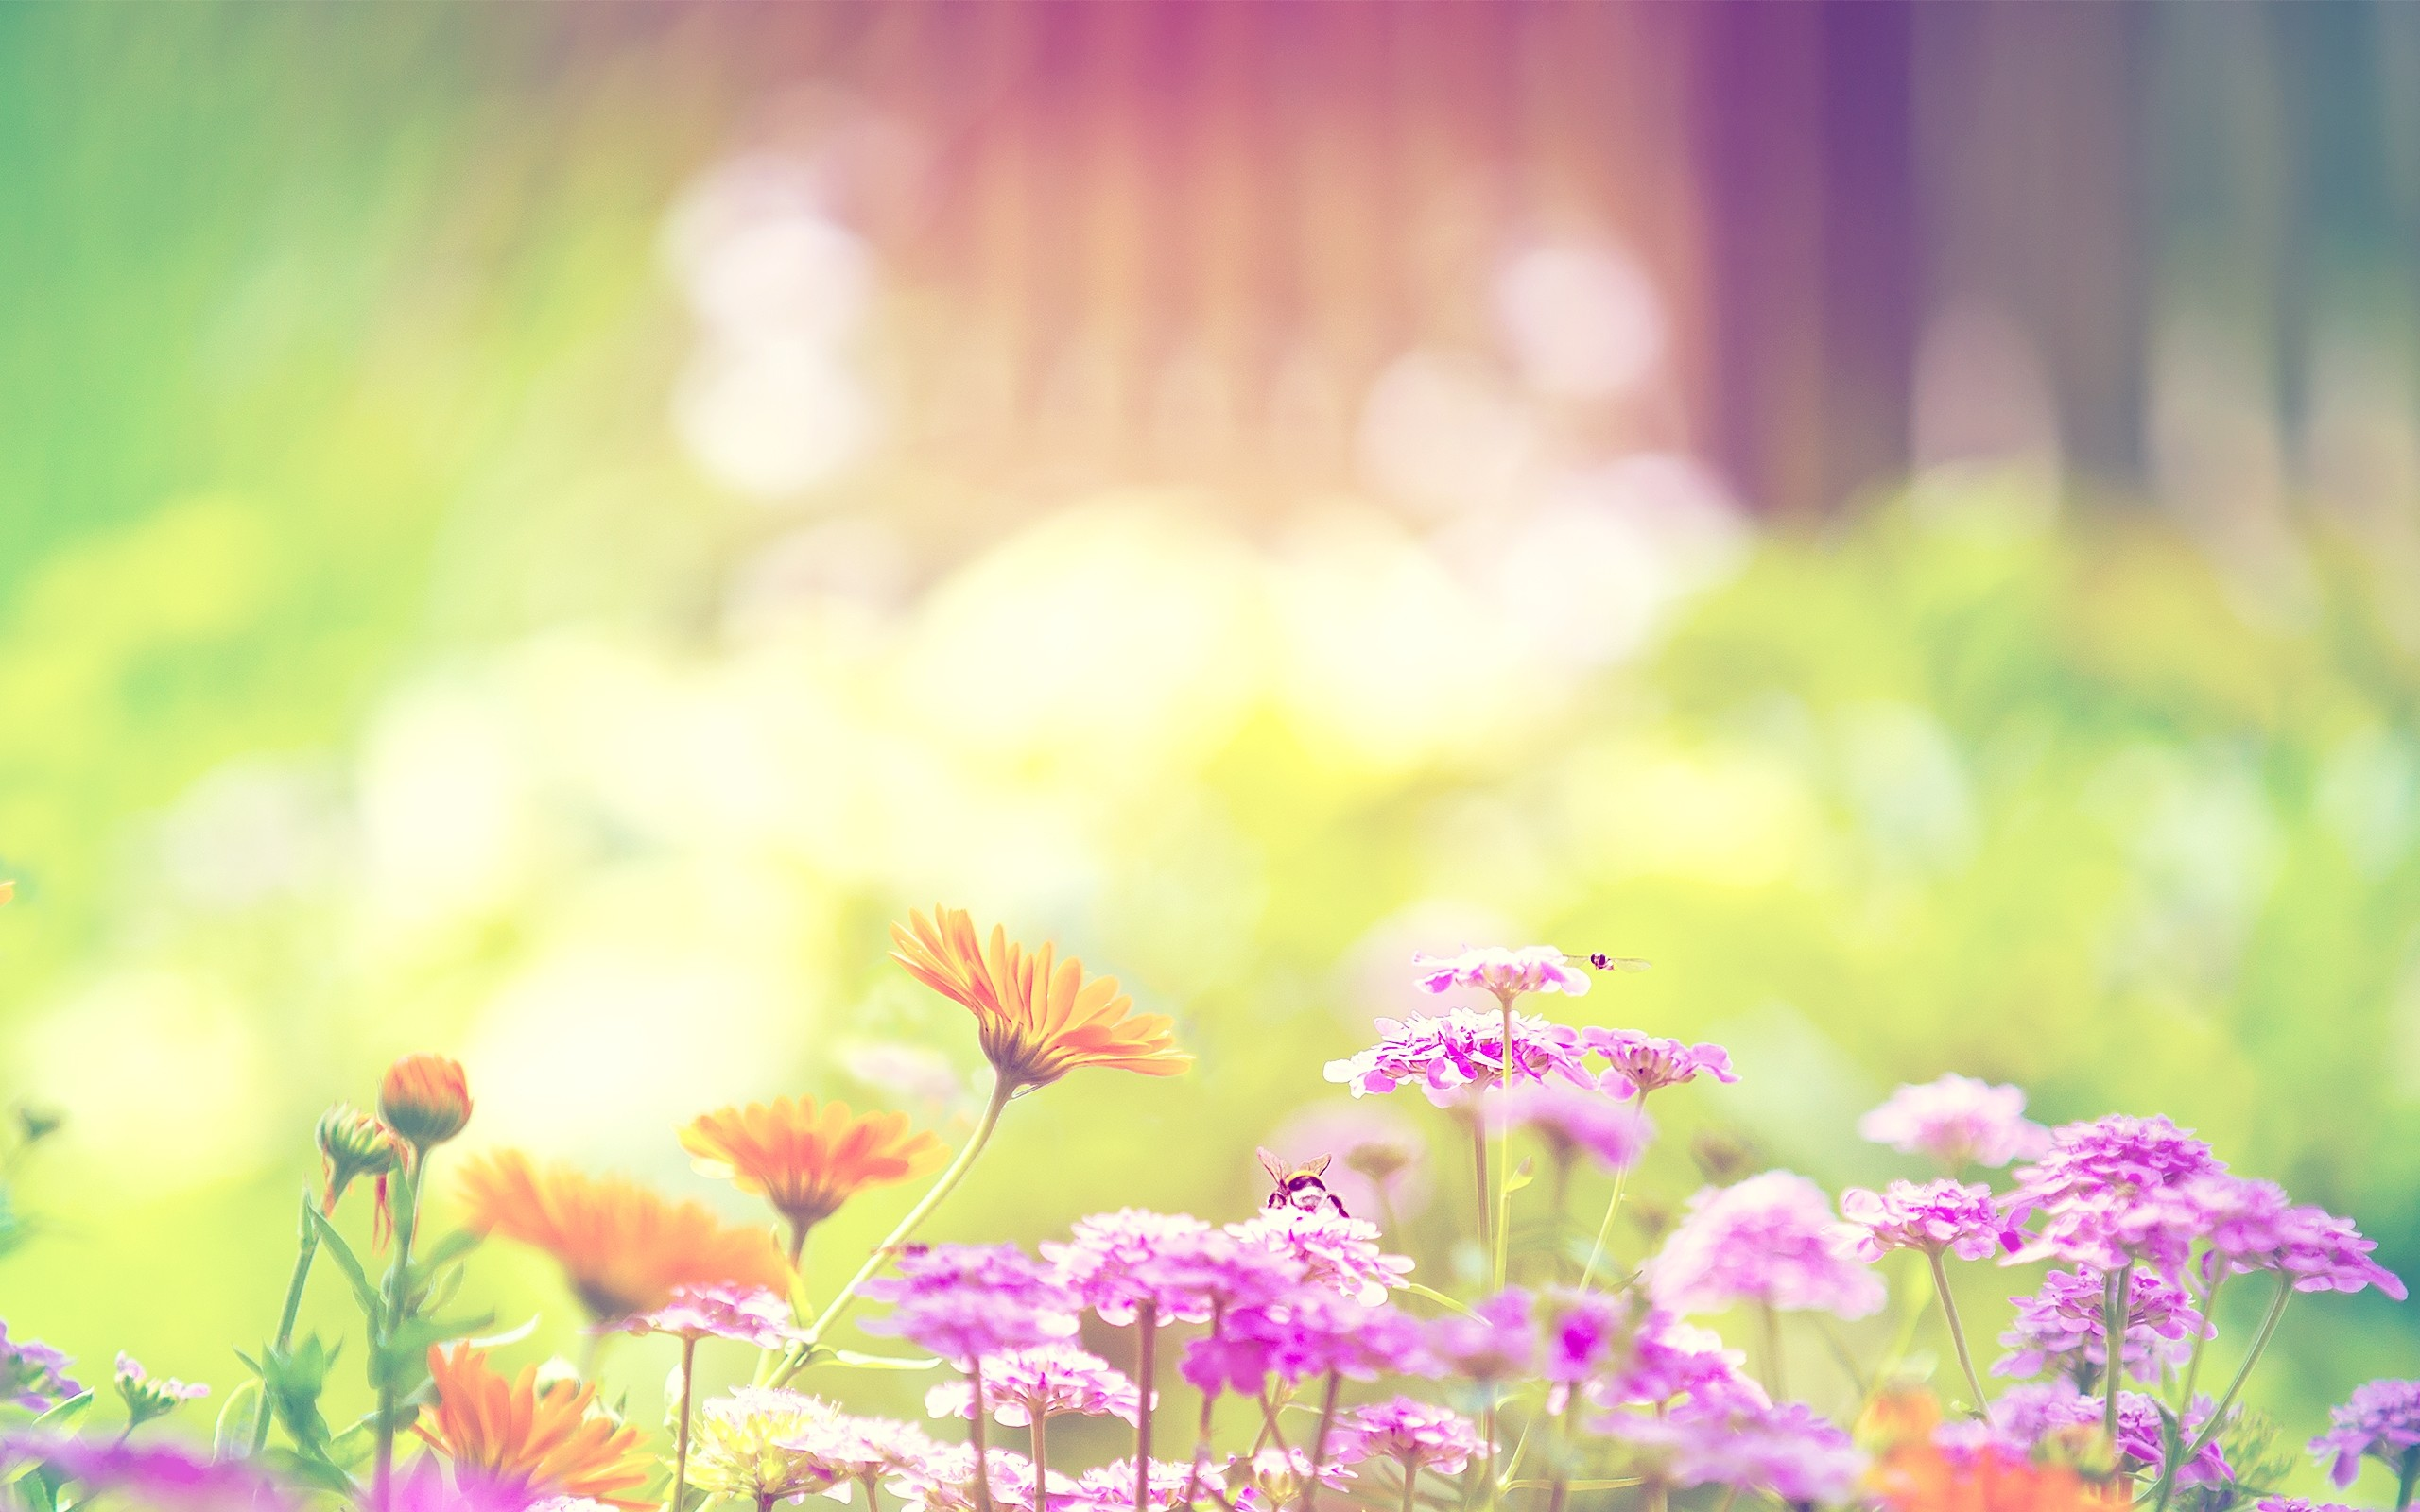 Spring flowers background 52 images 2560x1600 spring flowers background mightylinksfo